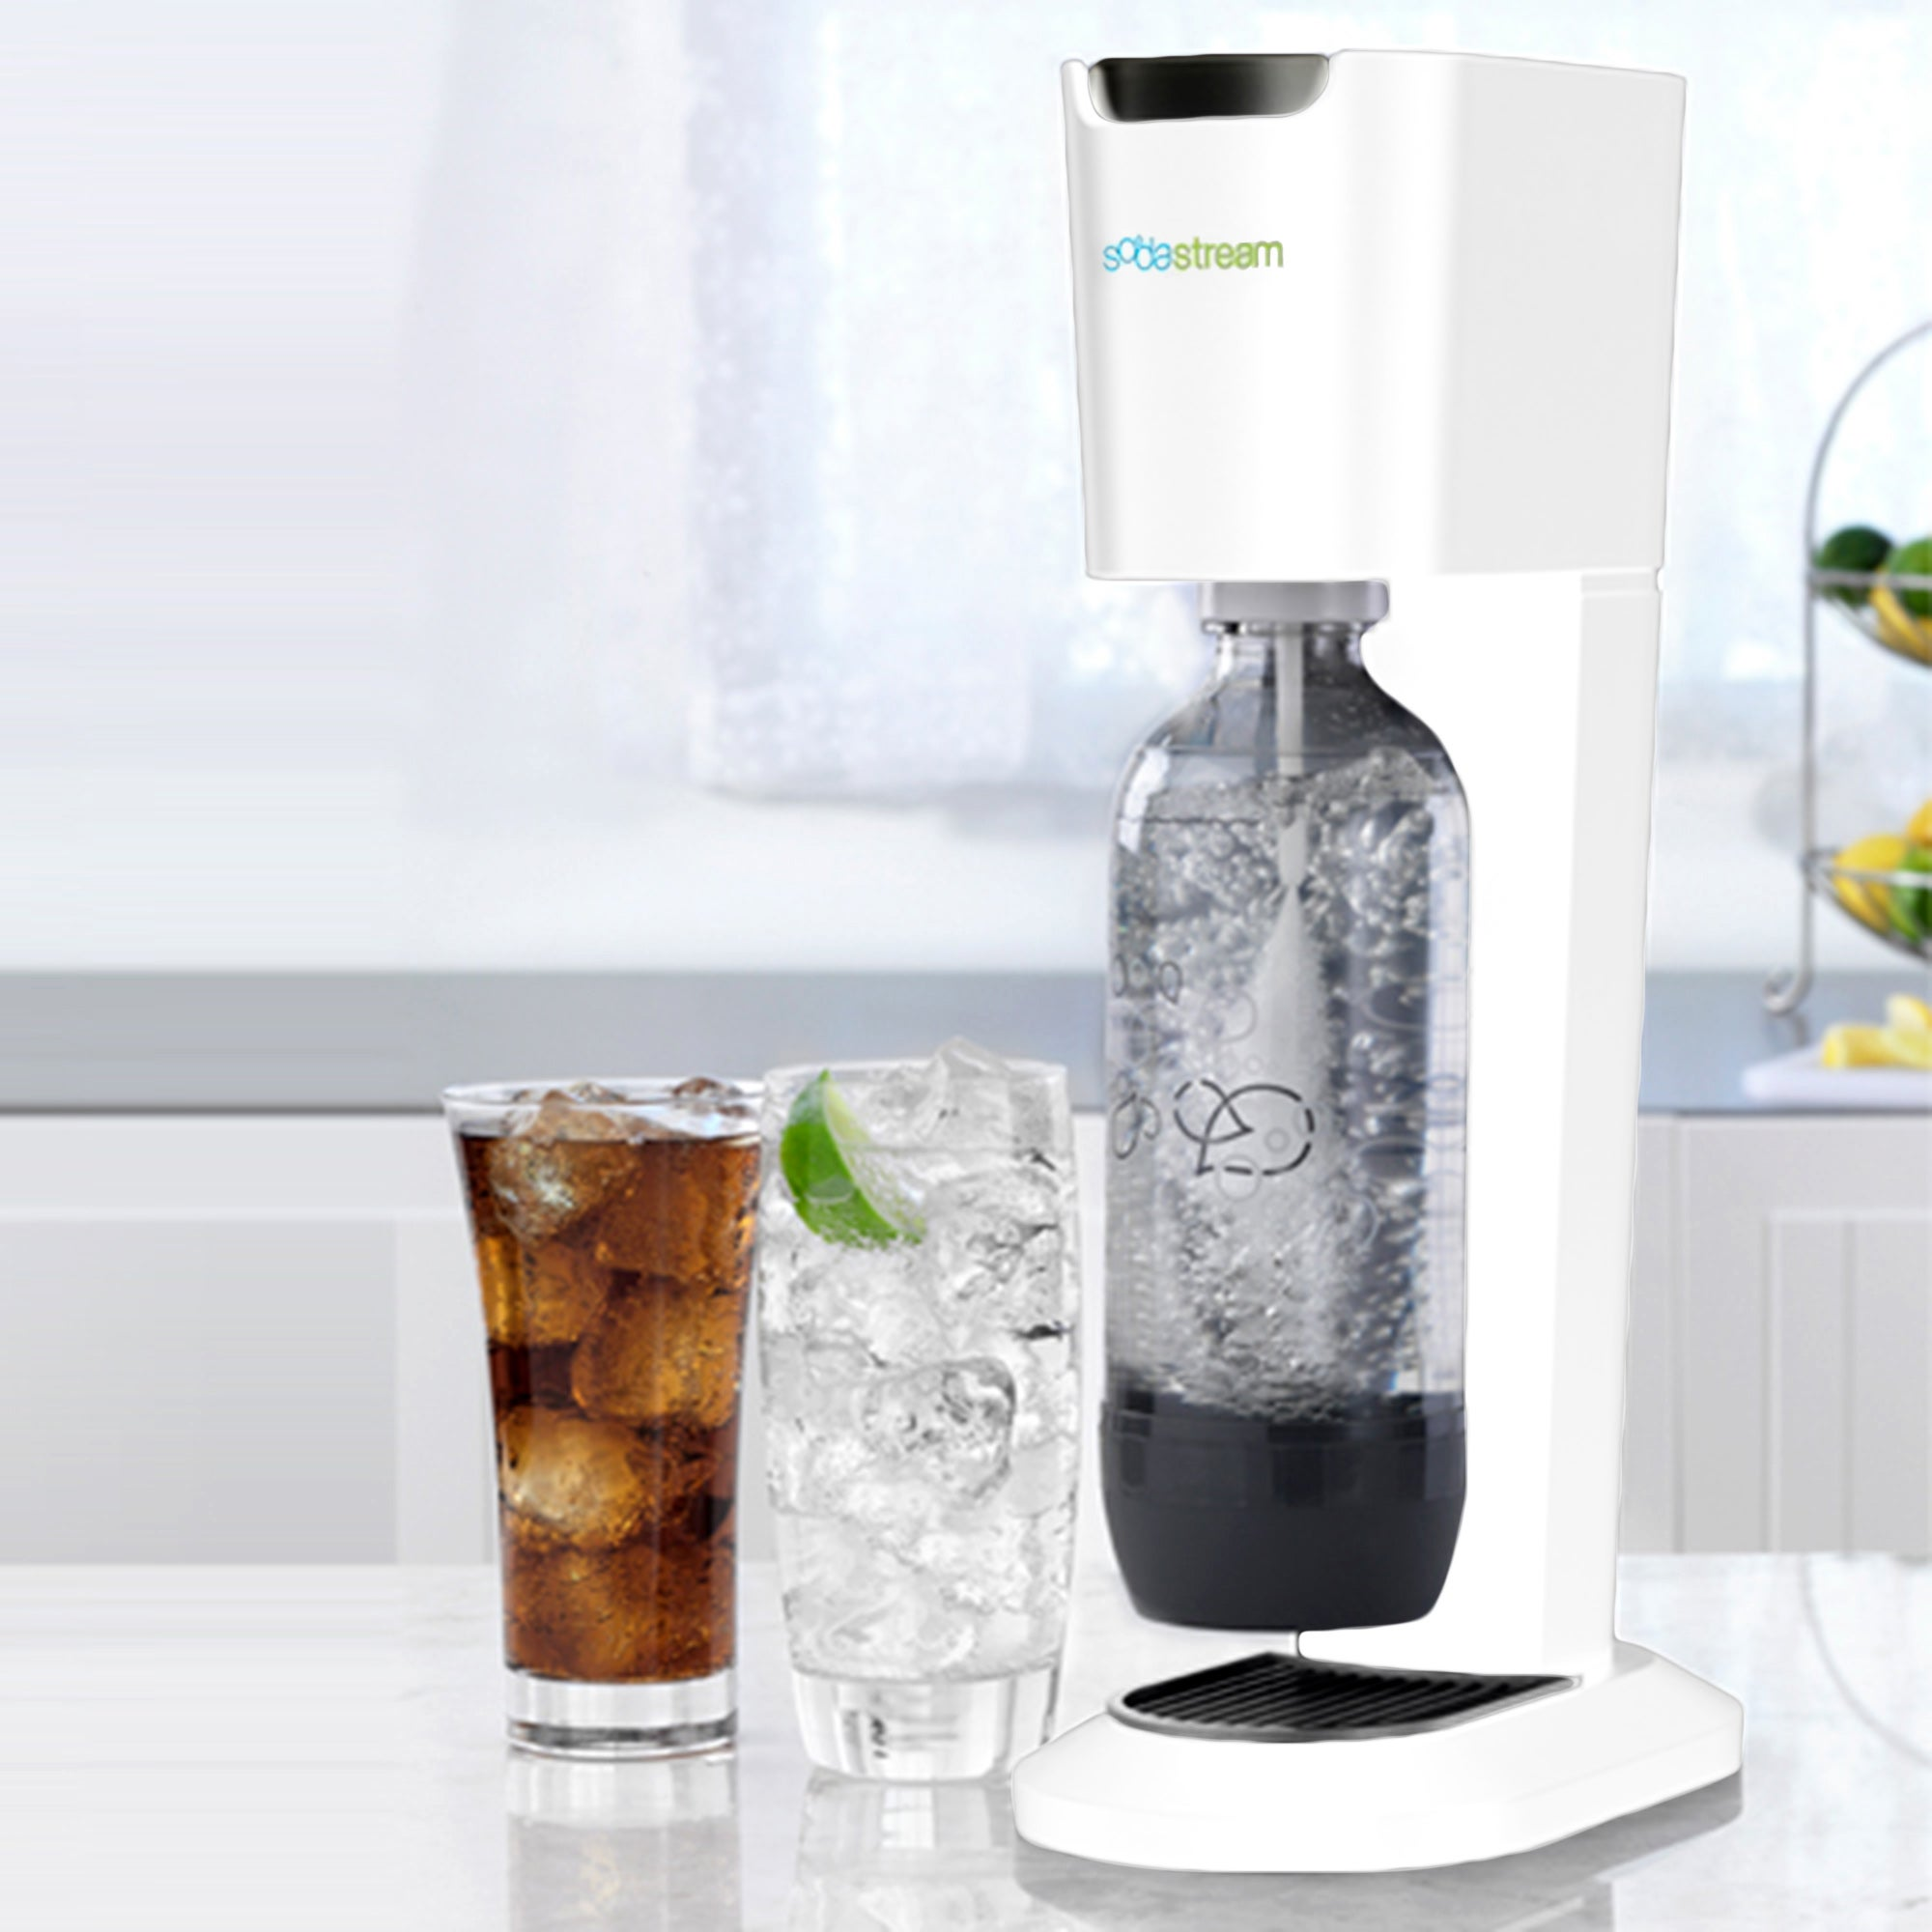 SodaStream White Genesis Drinks Maker